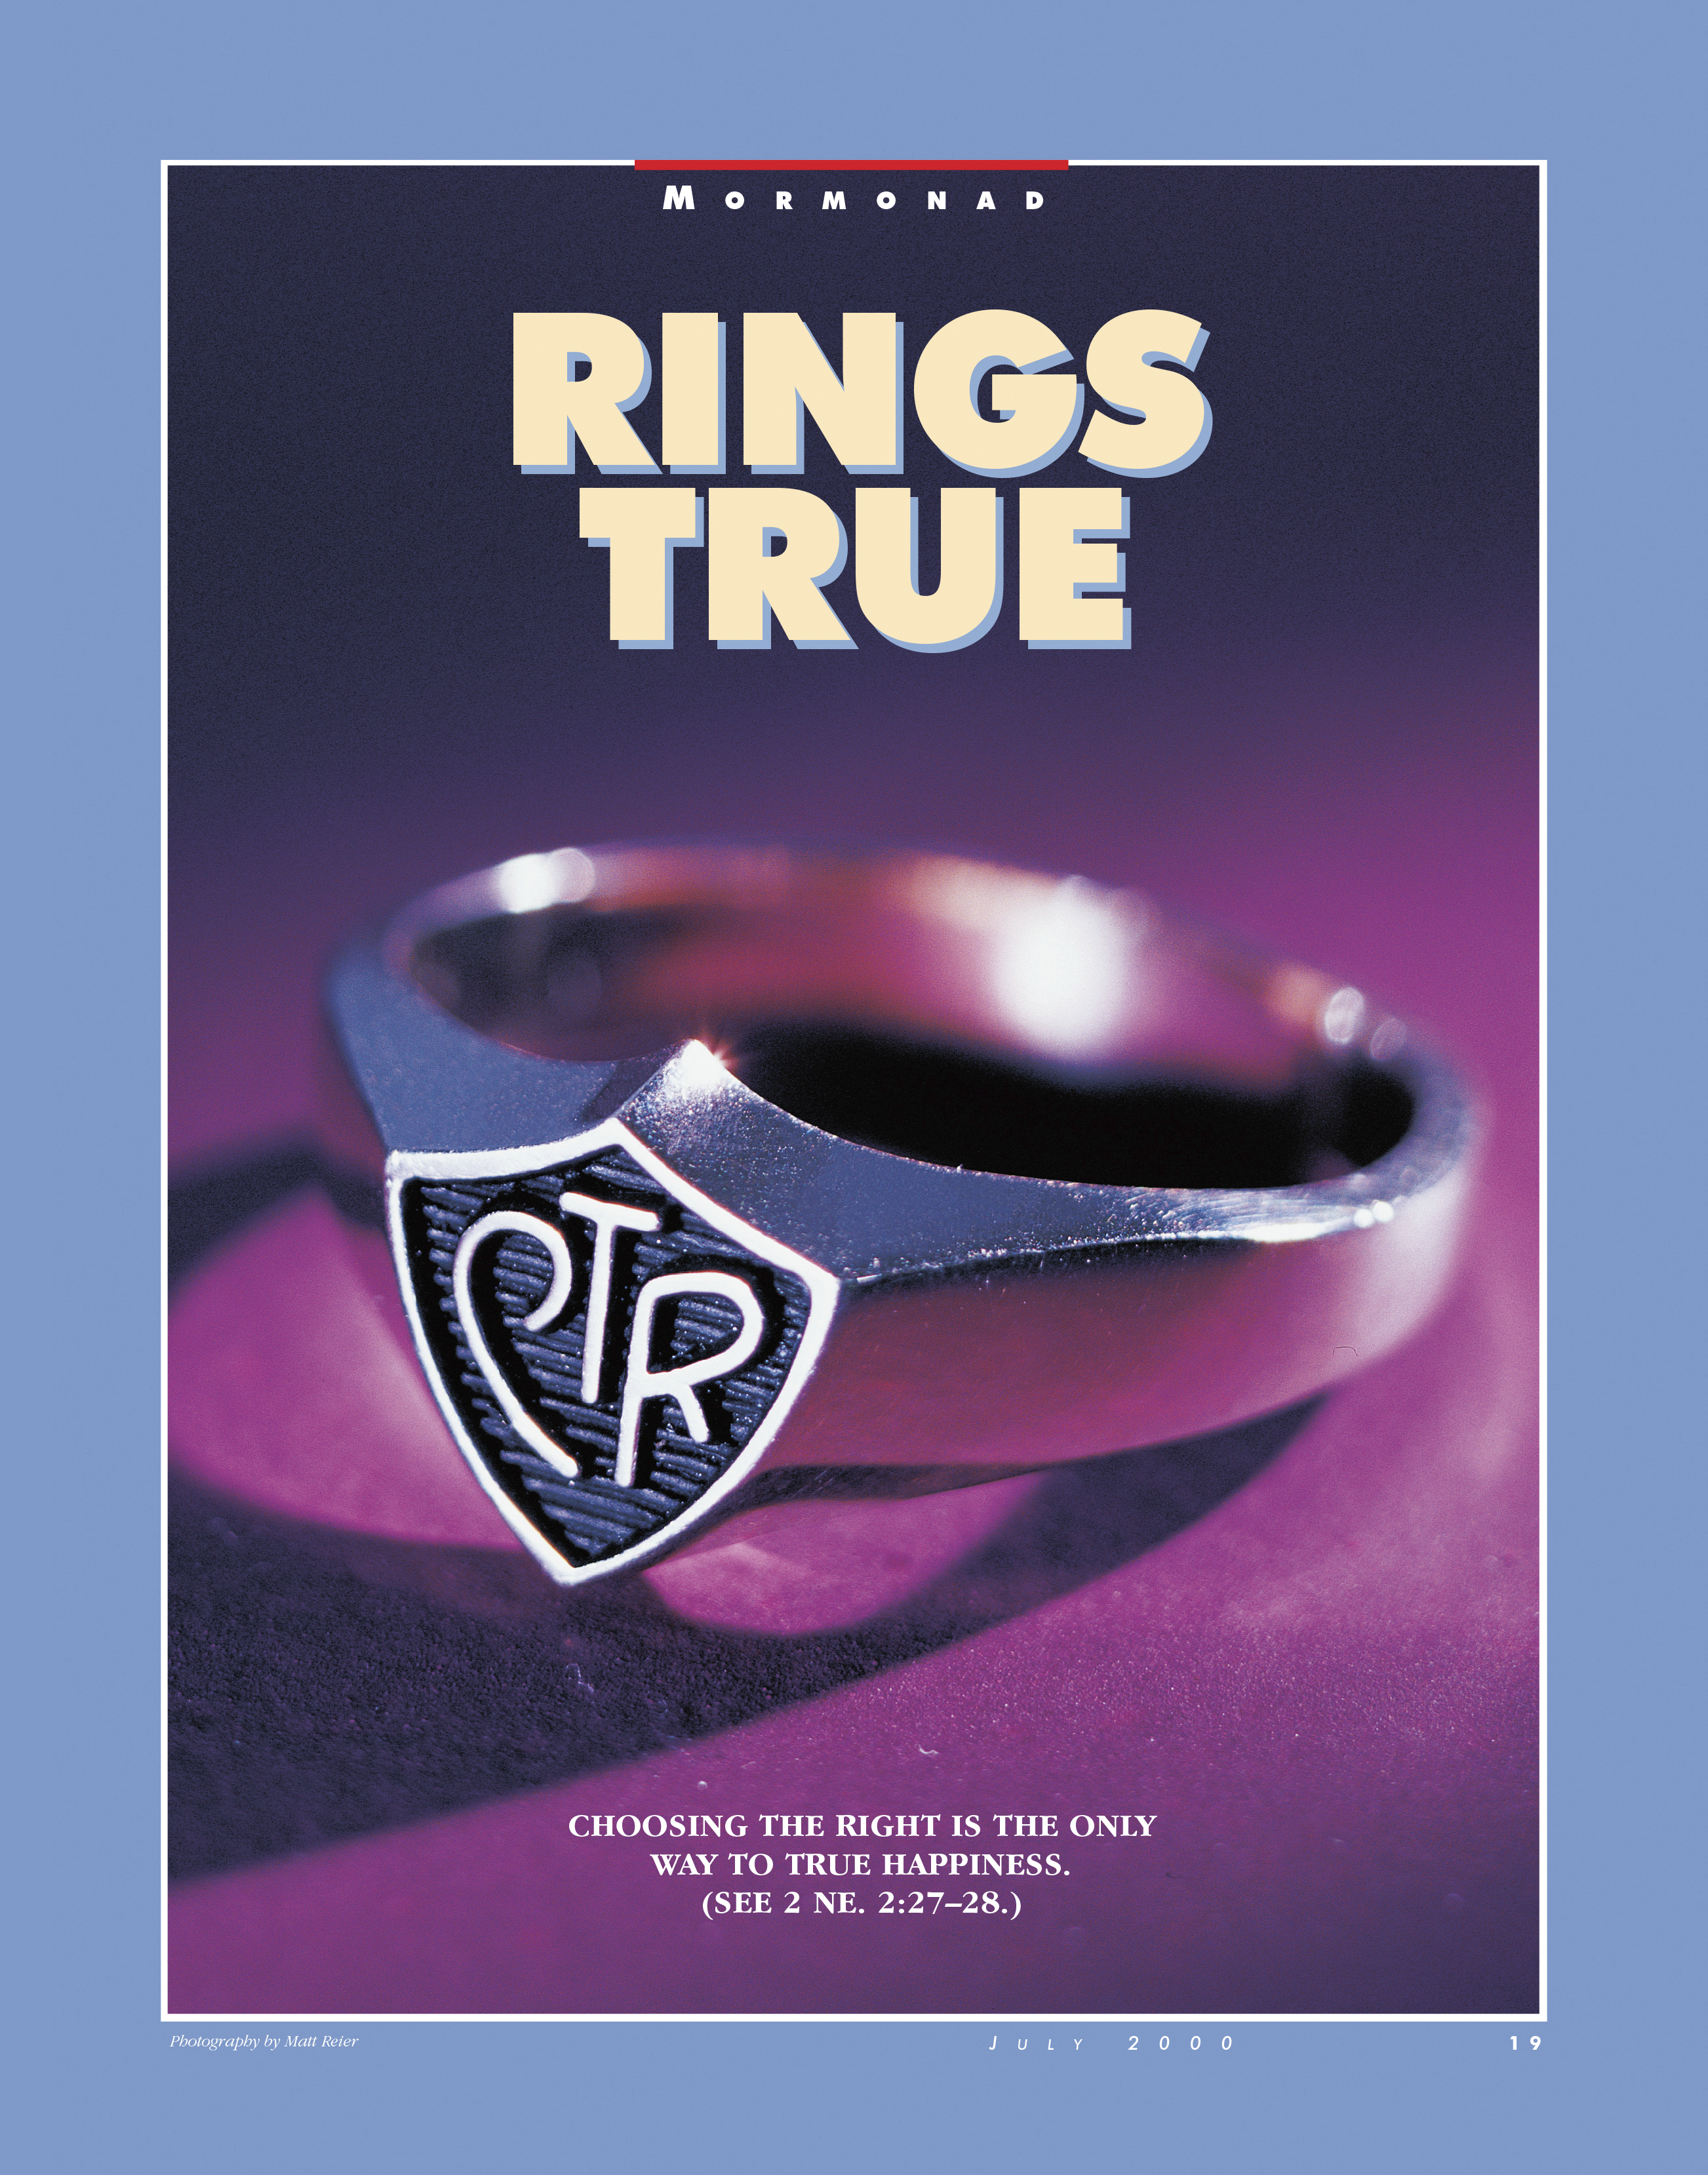 Rings True. Choosing the right is the only way to true happiness. (See 2 Ne. 2:27–28.) July 2000 © undefined ipCode 1.